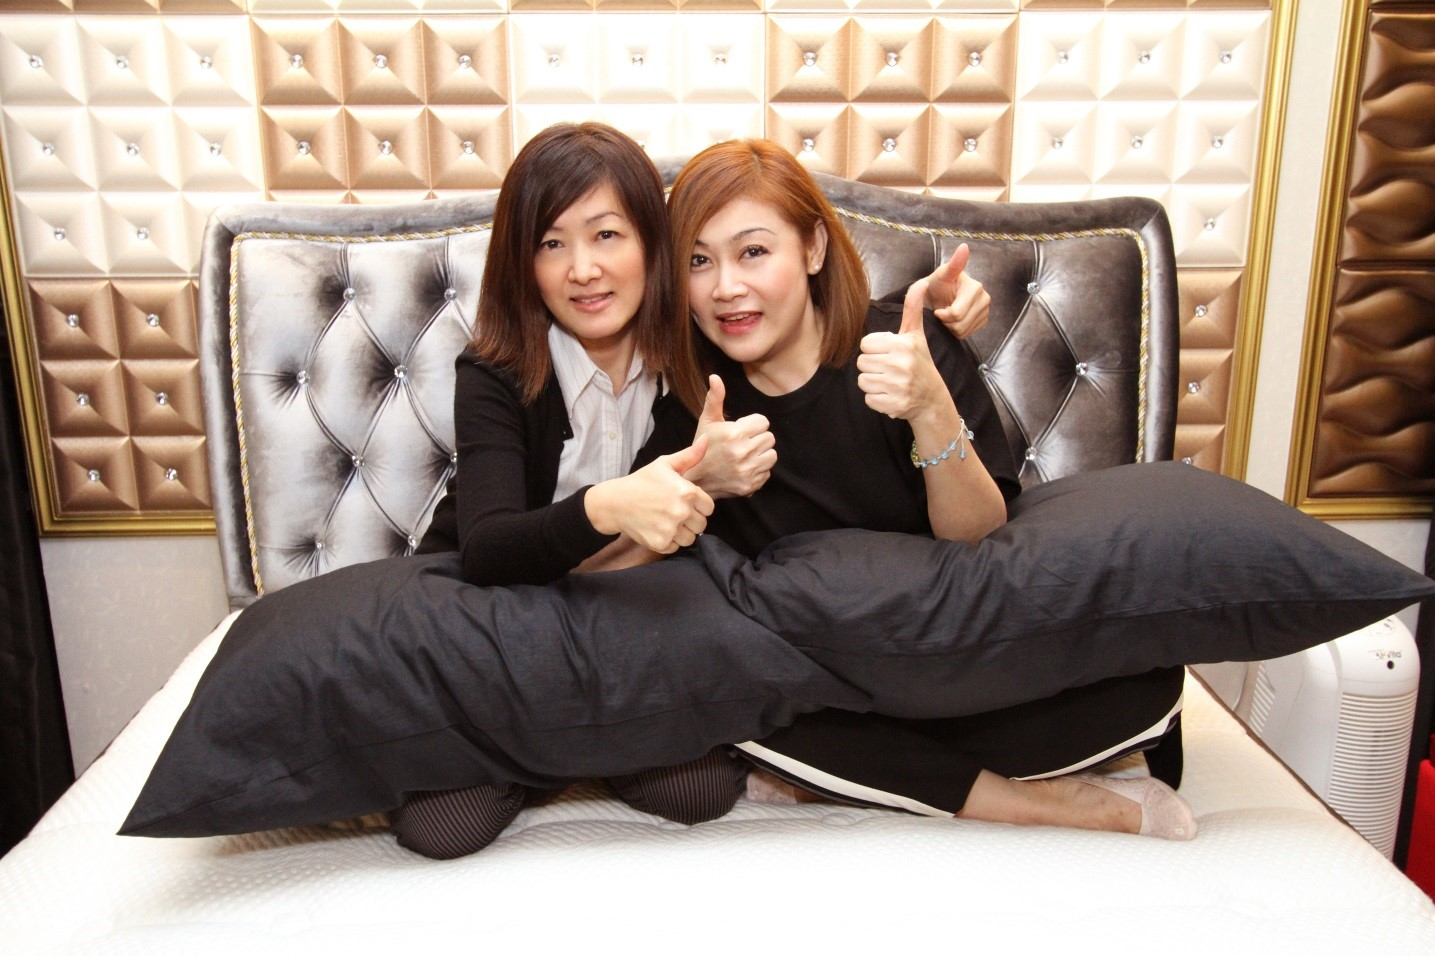 Grab Top quality My crystal Singapore Mattress sales. Call 9067 7990